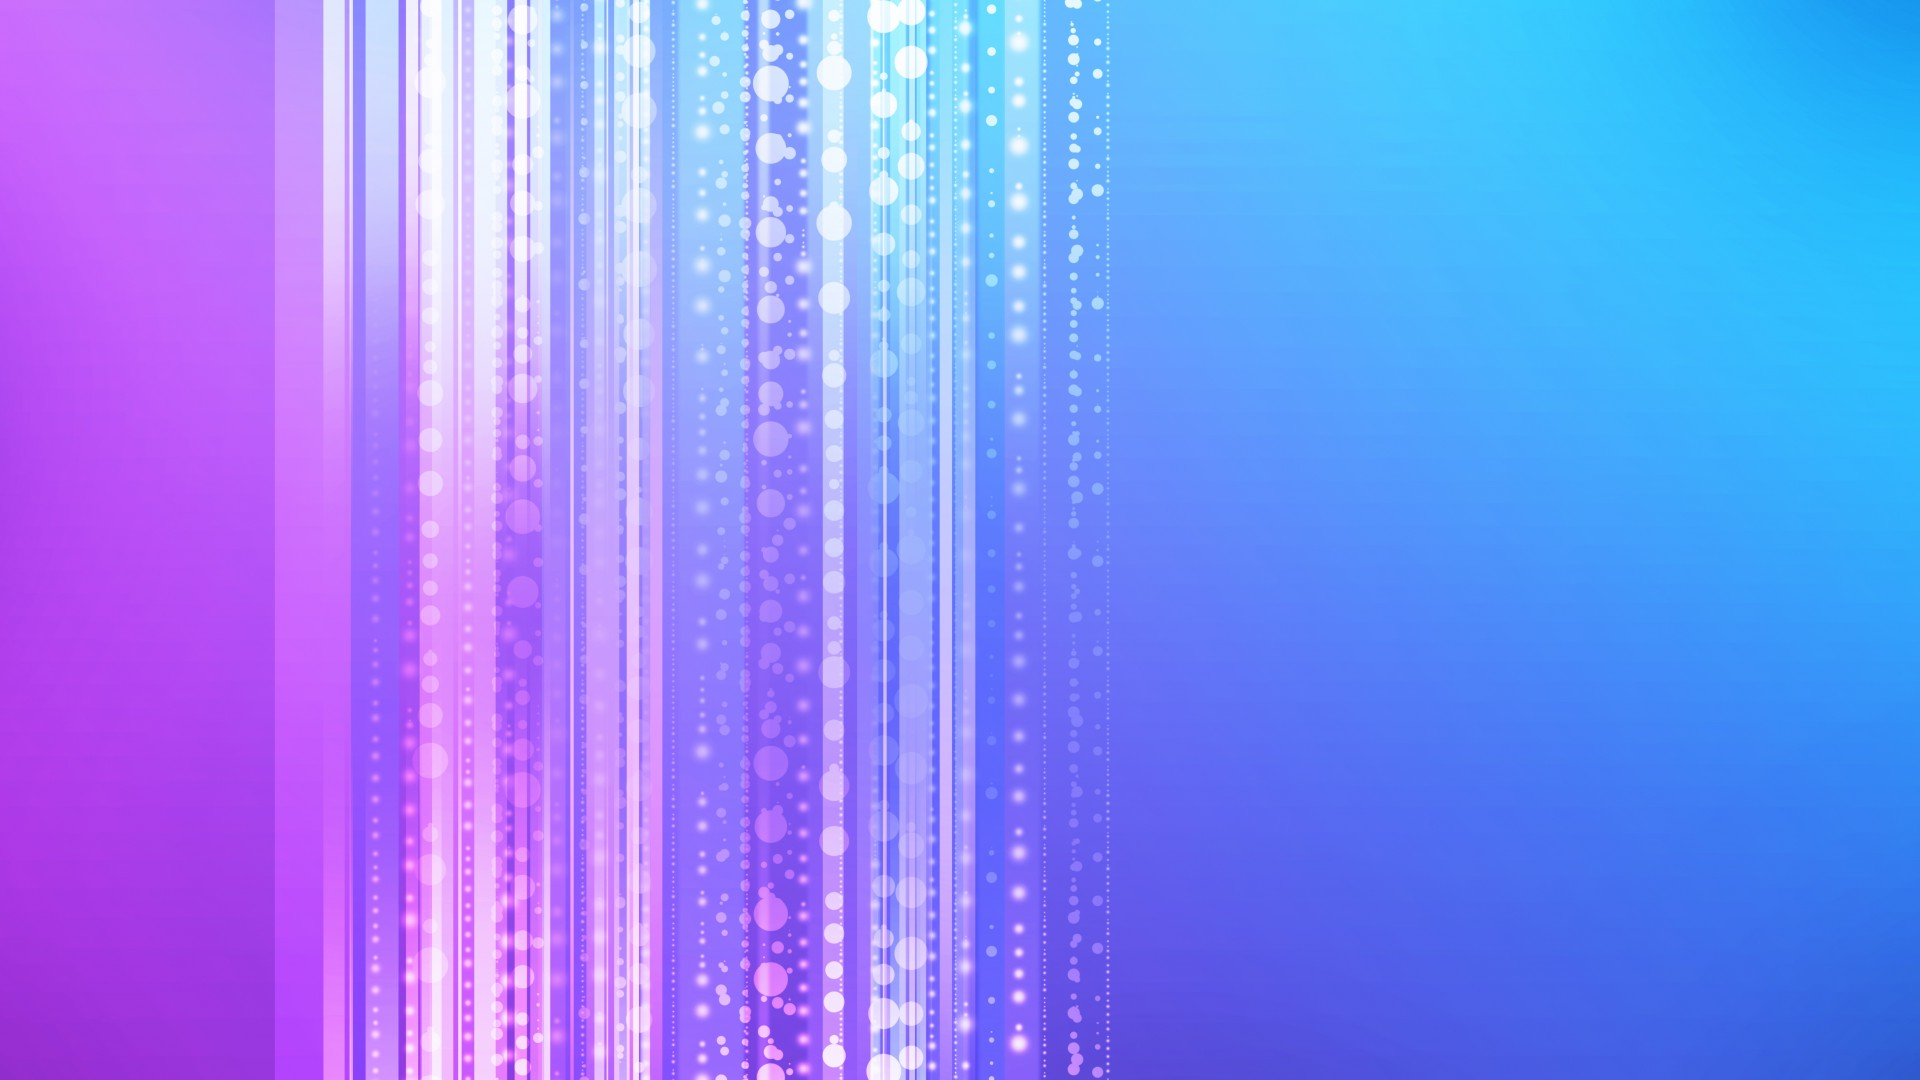 lines, 4k, 5k wallpaper, 8k, vertical, blue, violet, background (horizontal)